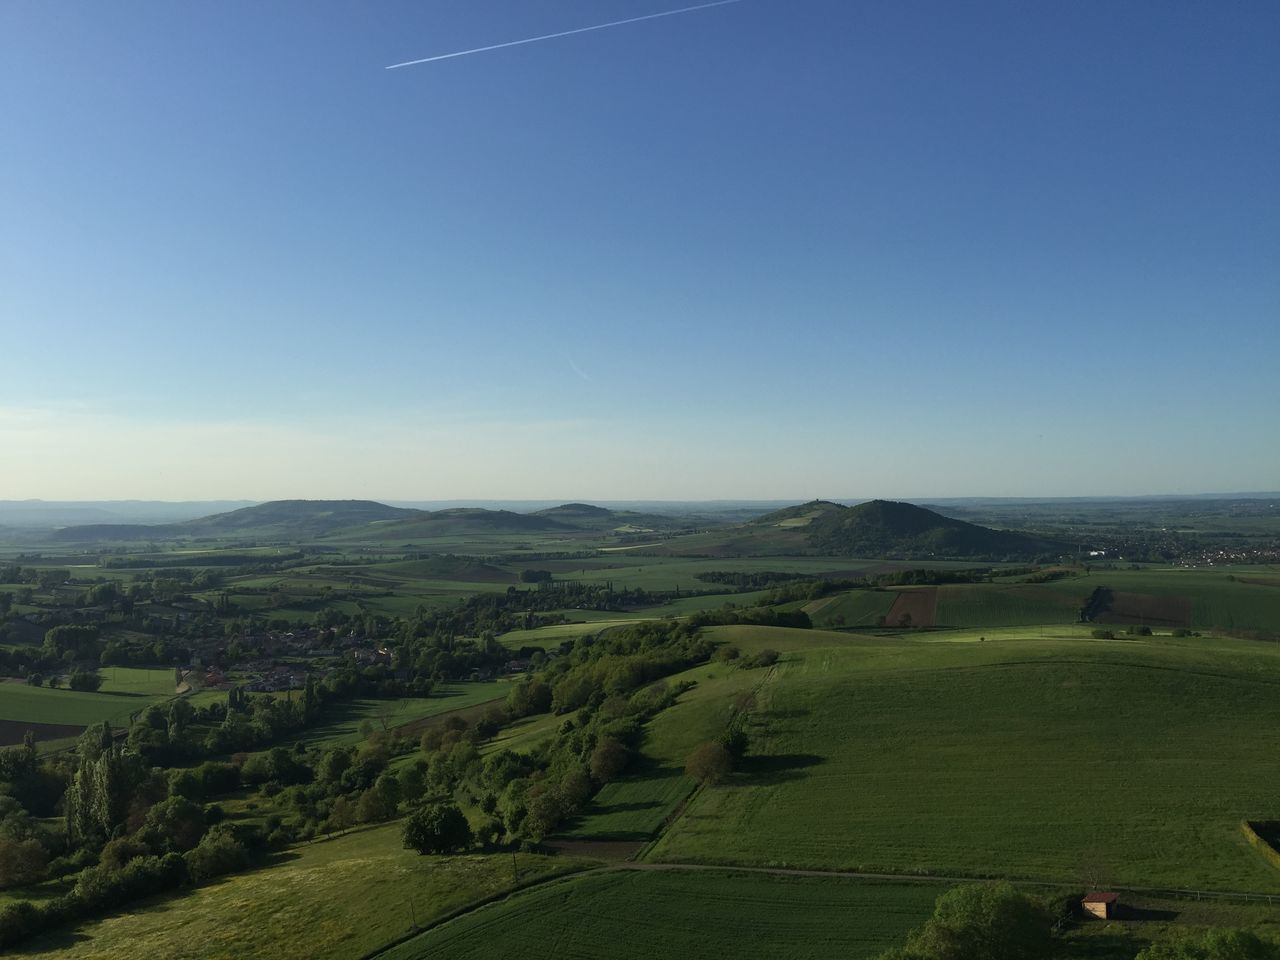 IPhoneography Enjoying The View Auvergne Myauvergne France From My Point Of View Sun Blue Sky Landscape Landscape_Collection